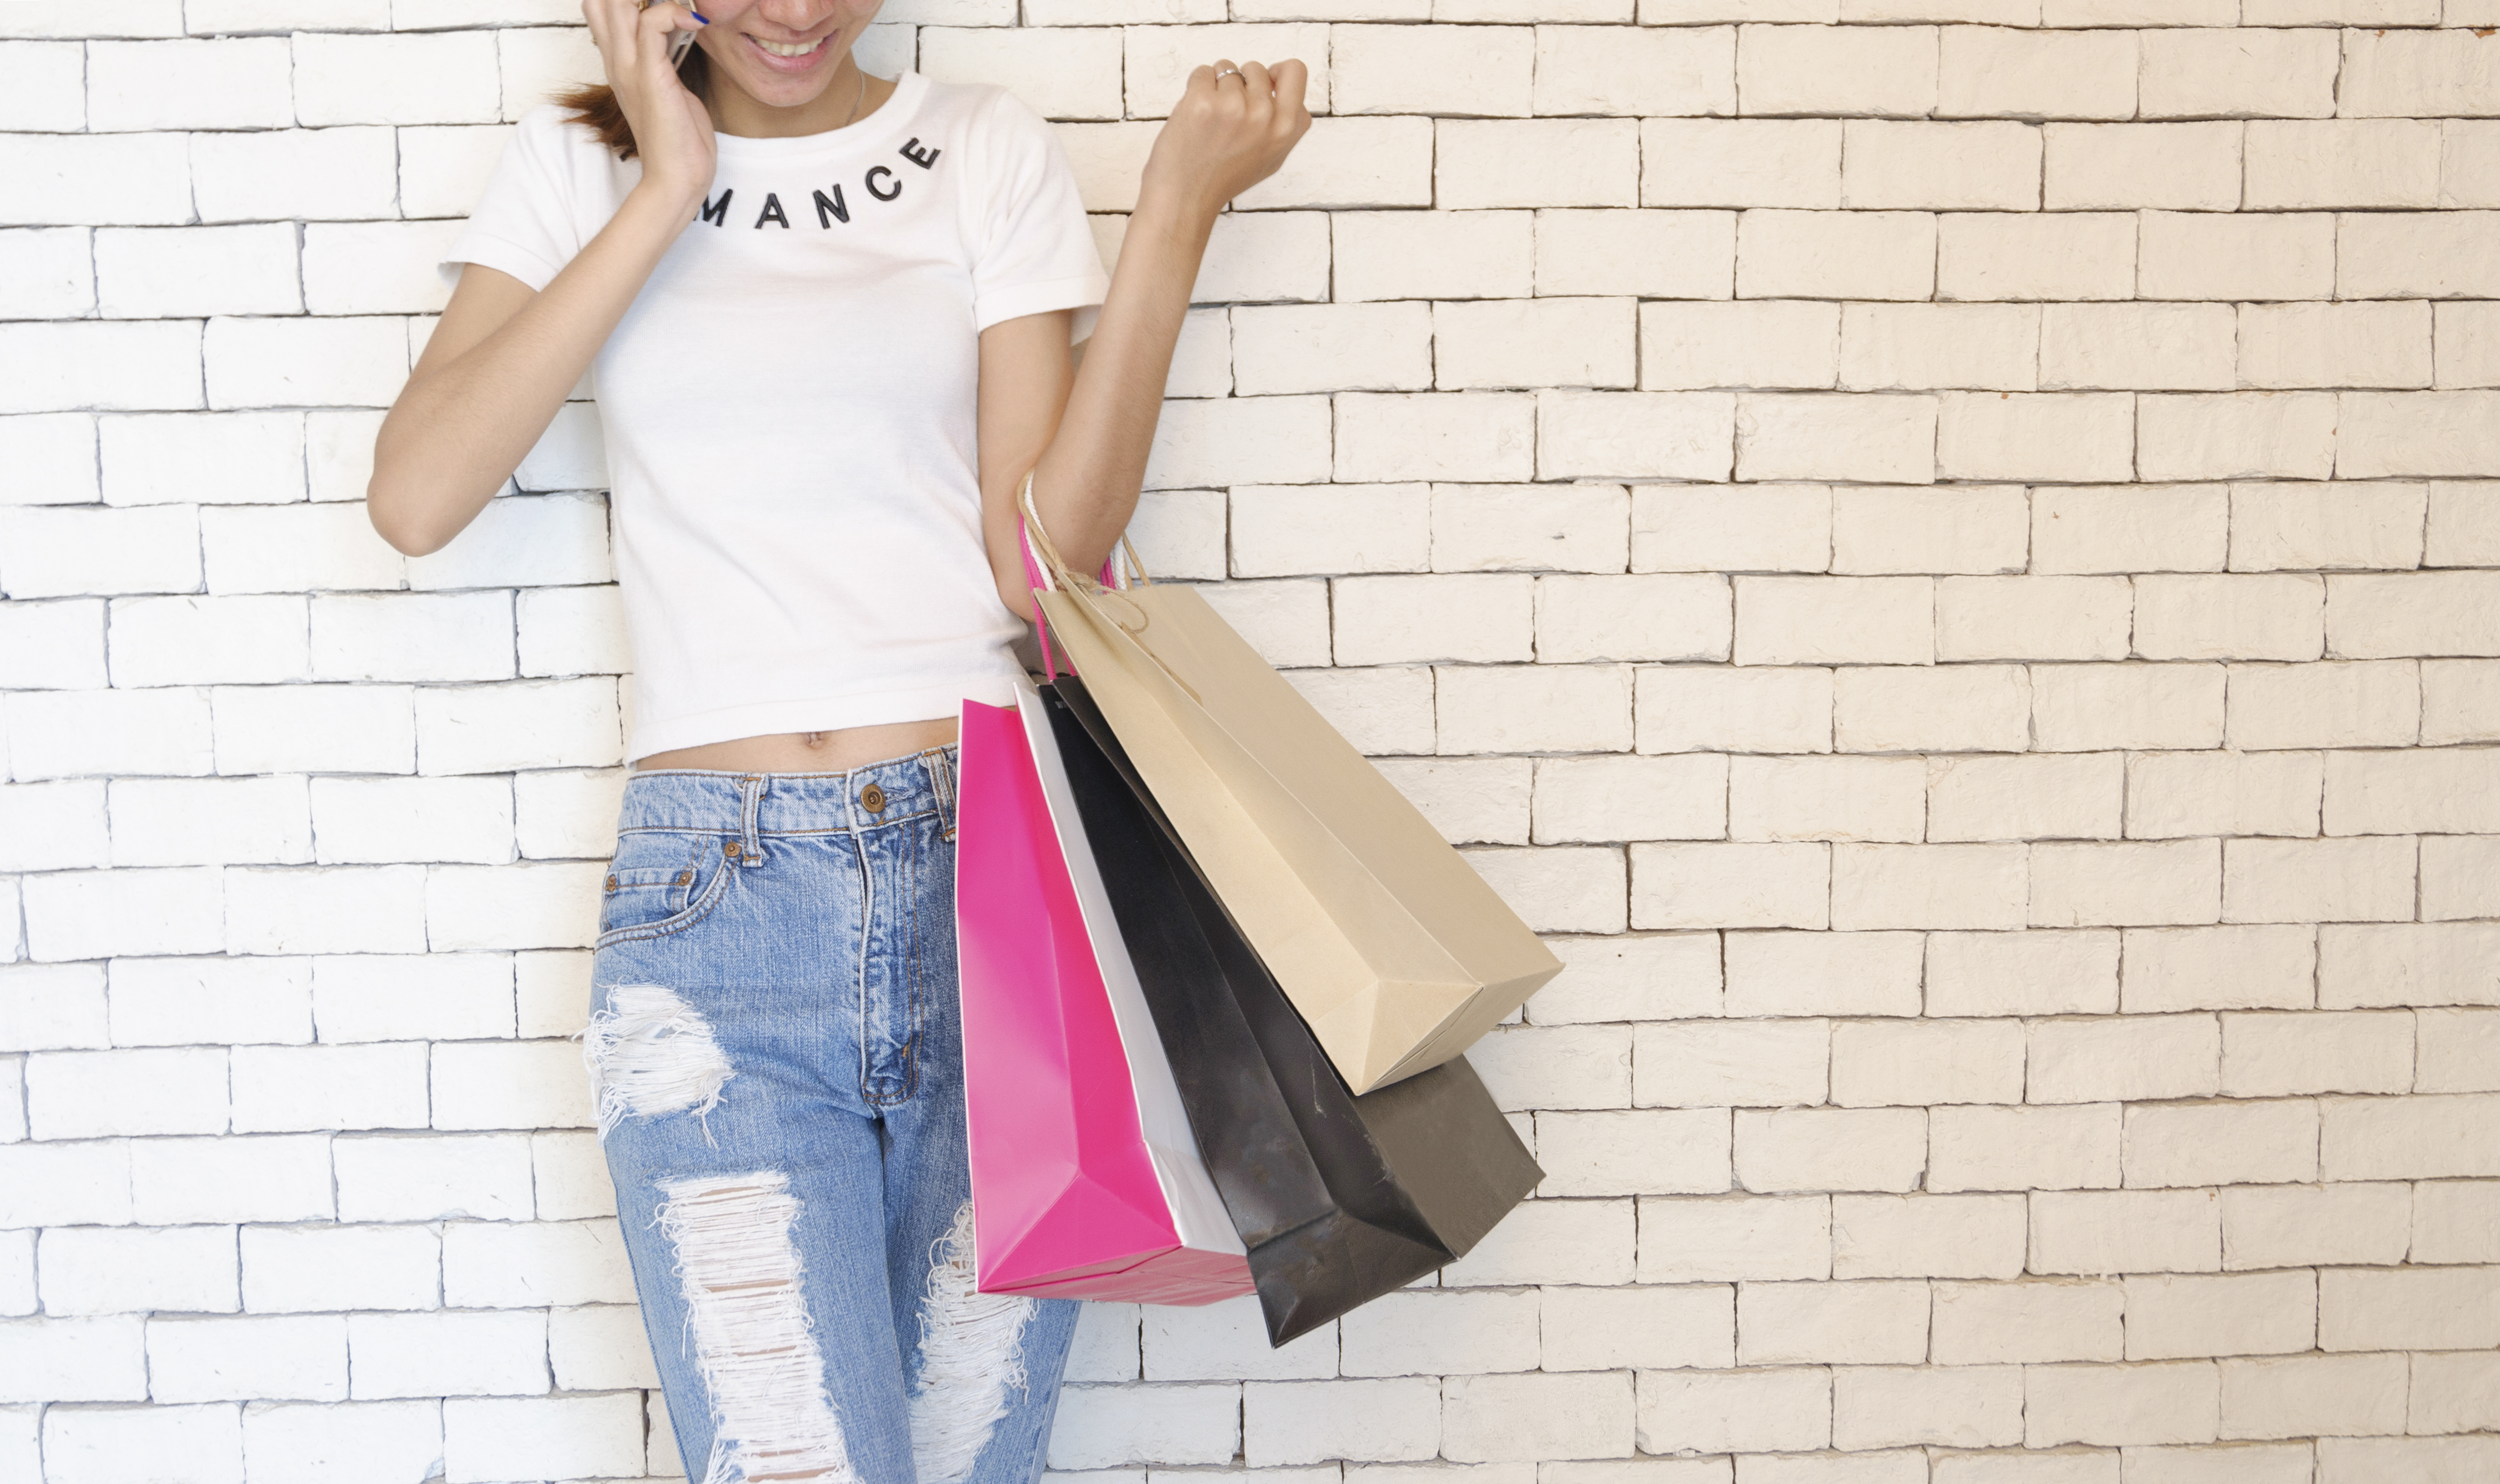 71% of consumers prefer brands that have loyalty programmes based on shopping habits